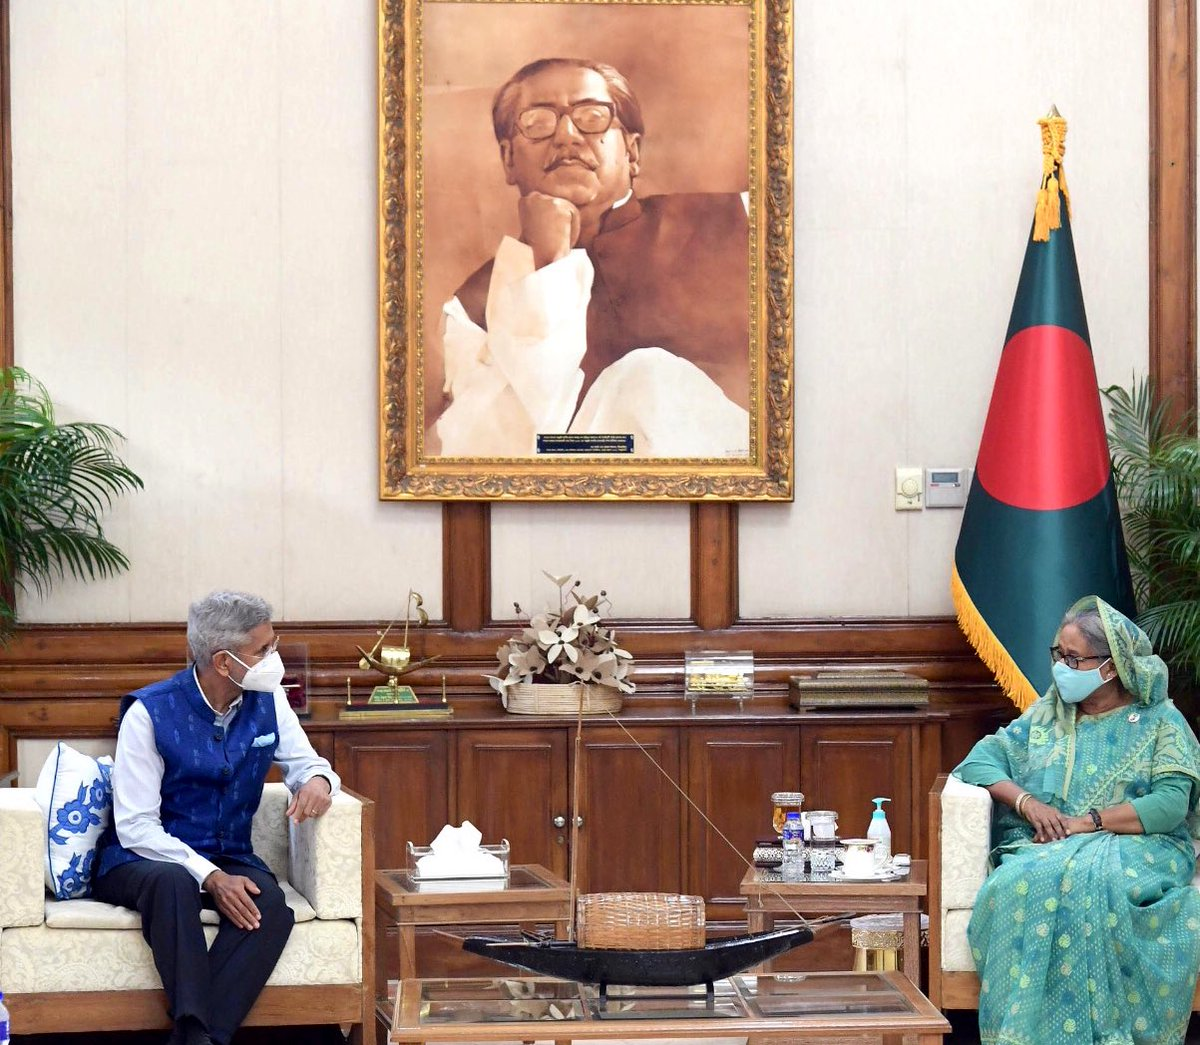 Thank PM Sheikh Hasina for receiving me today. Conveyed warm greetings of PM @narendramodi. Her sagacity and leadership continues to inspire our relationship.